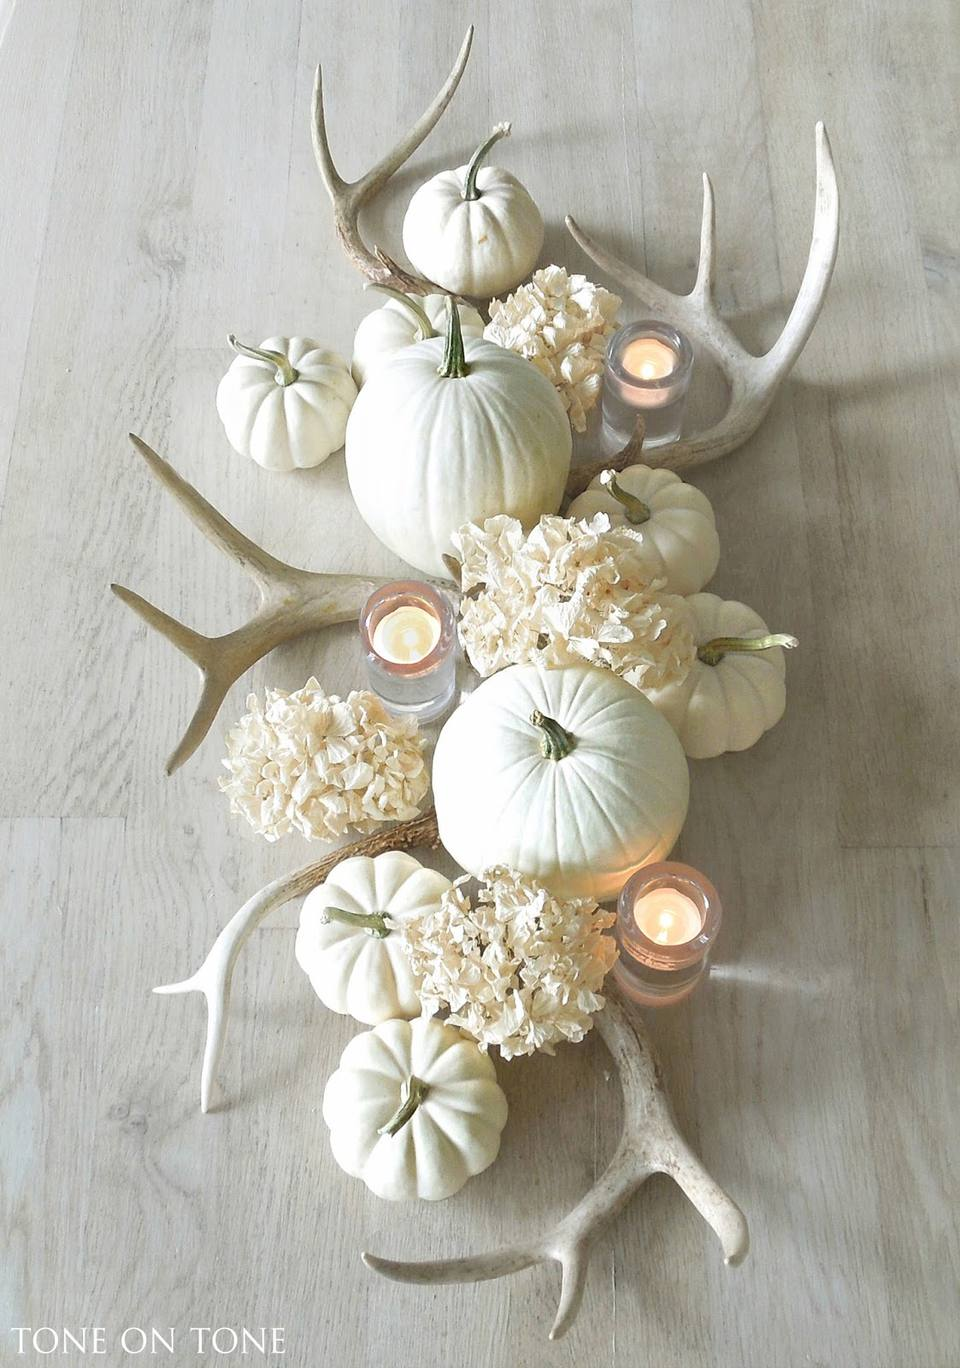 Trending for Fall: Wedding Decor Ideas